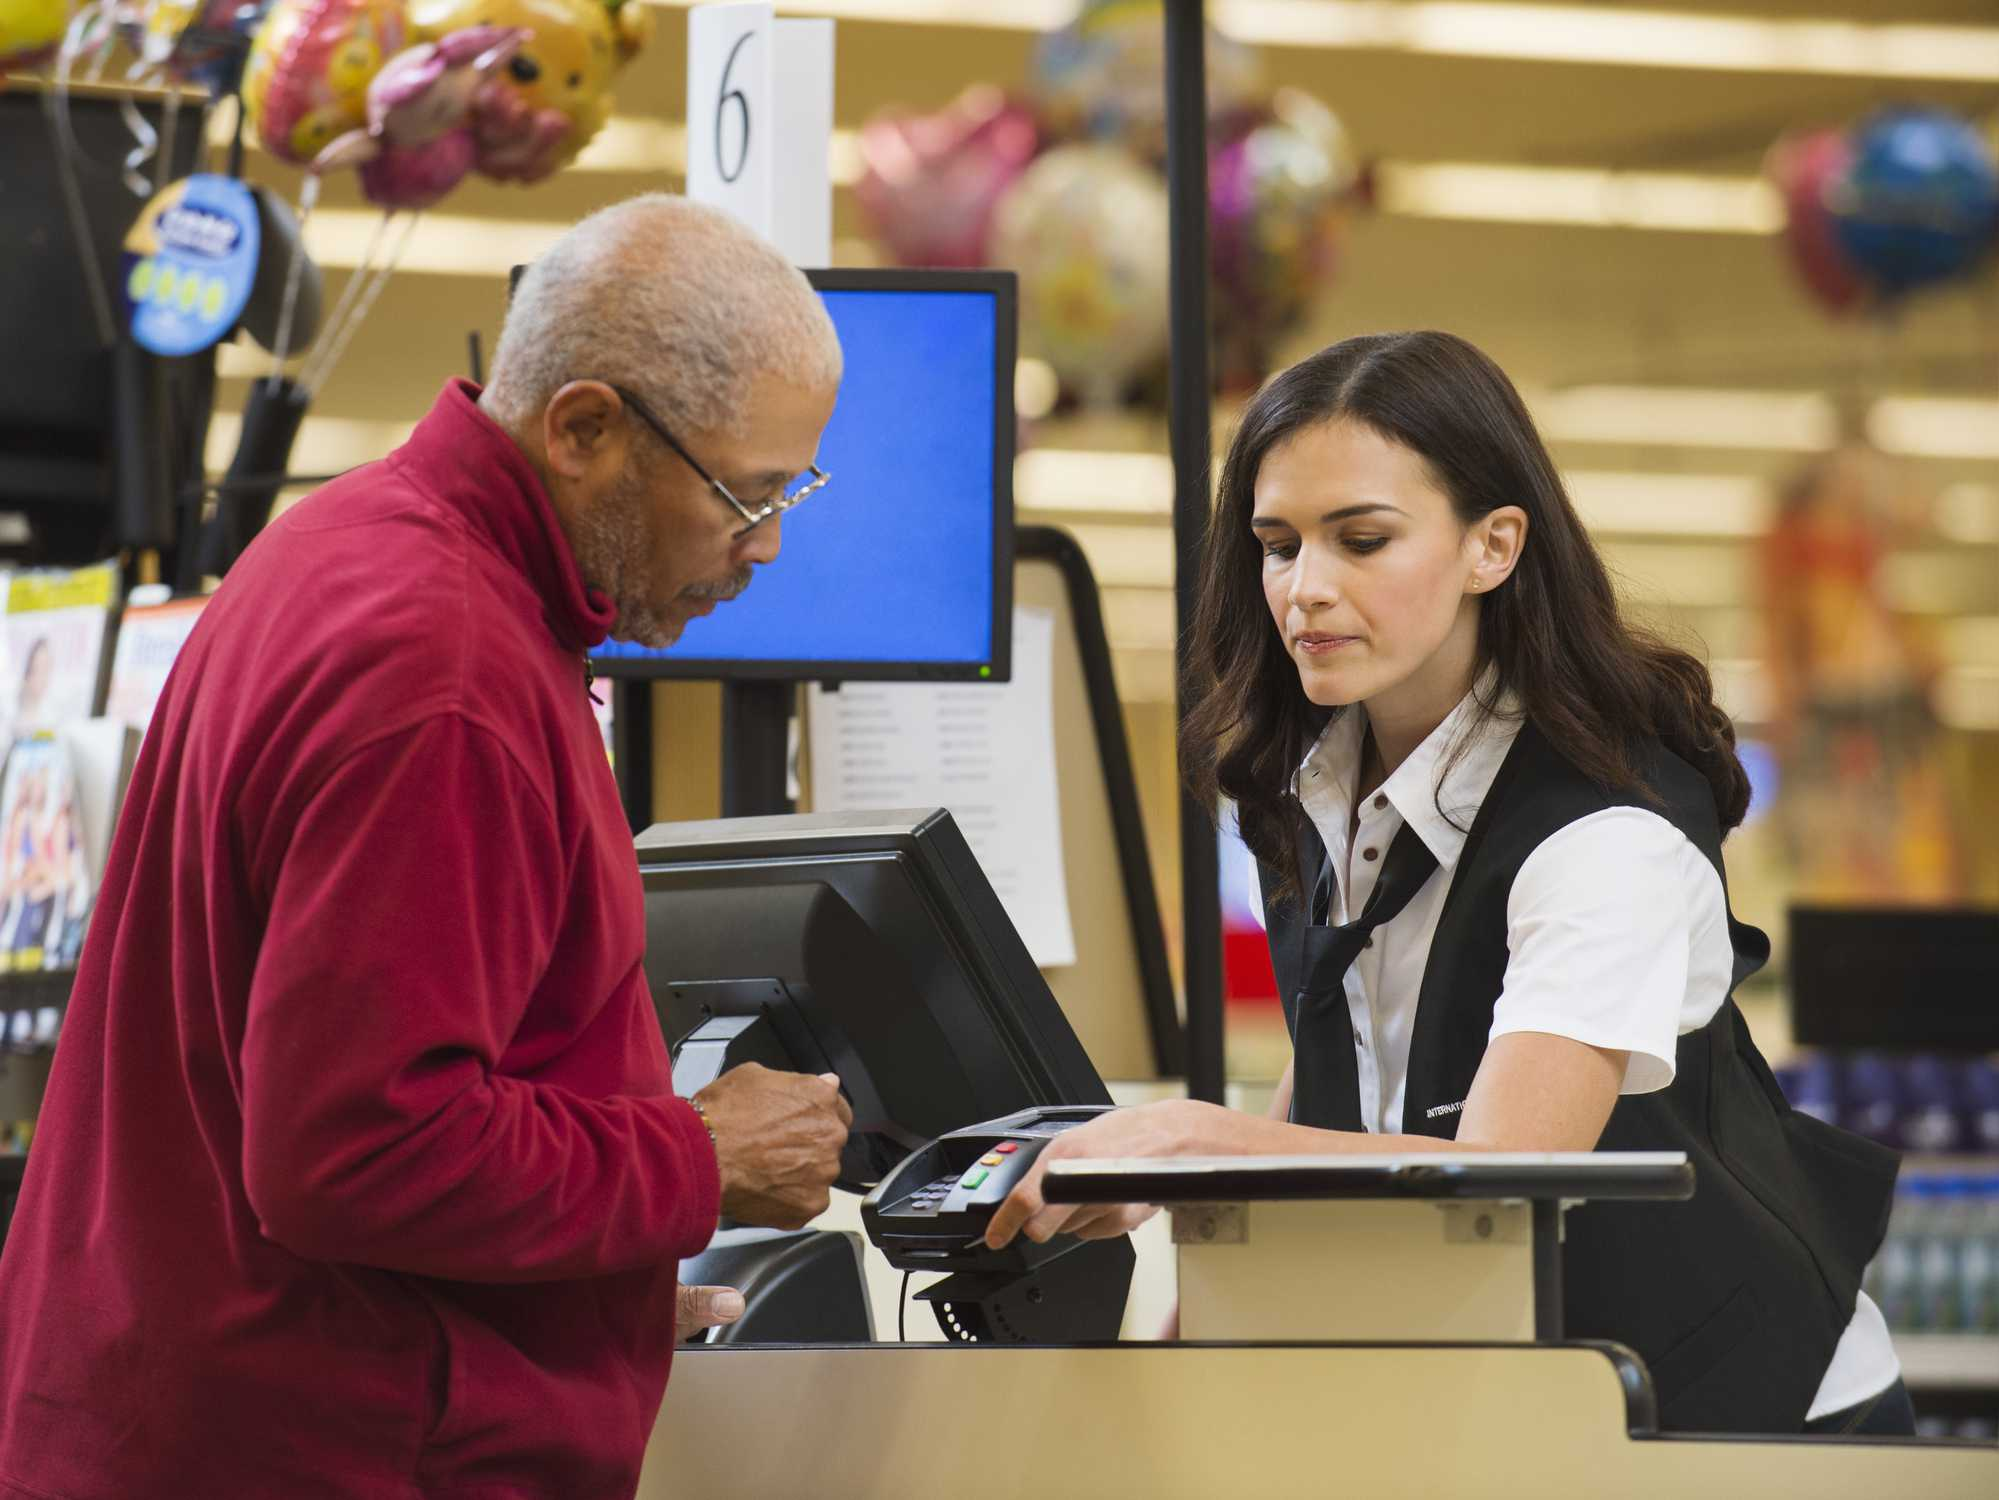 senior man checking out at store register